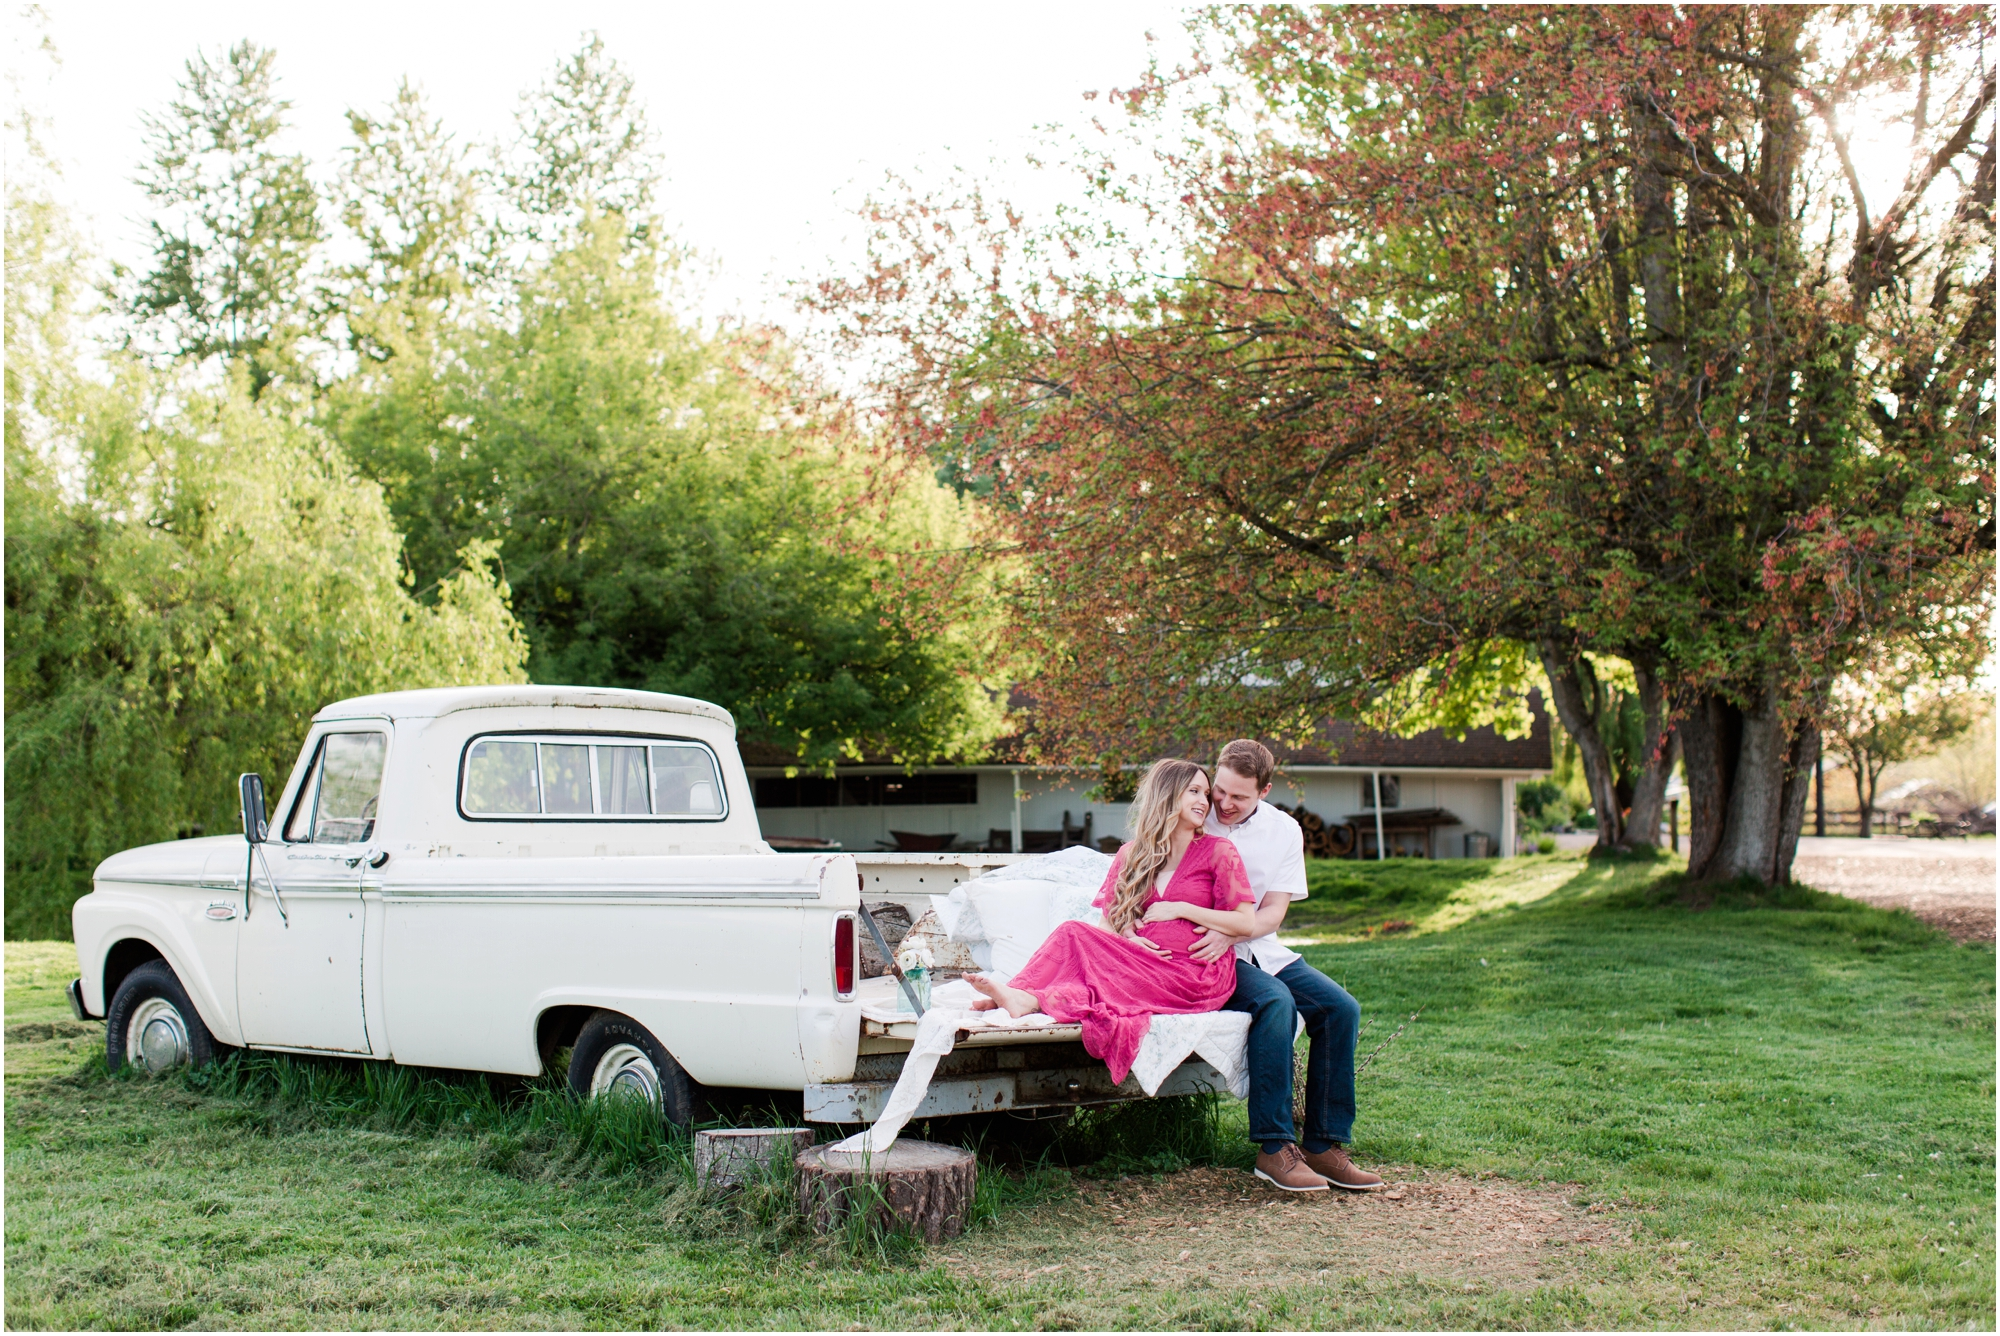 Wild Hearts Farm maternity shoot in Tacoma. Photos by Briana Calderon Photography based in the greater Seattle Tacoma Area._1204.jpg